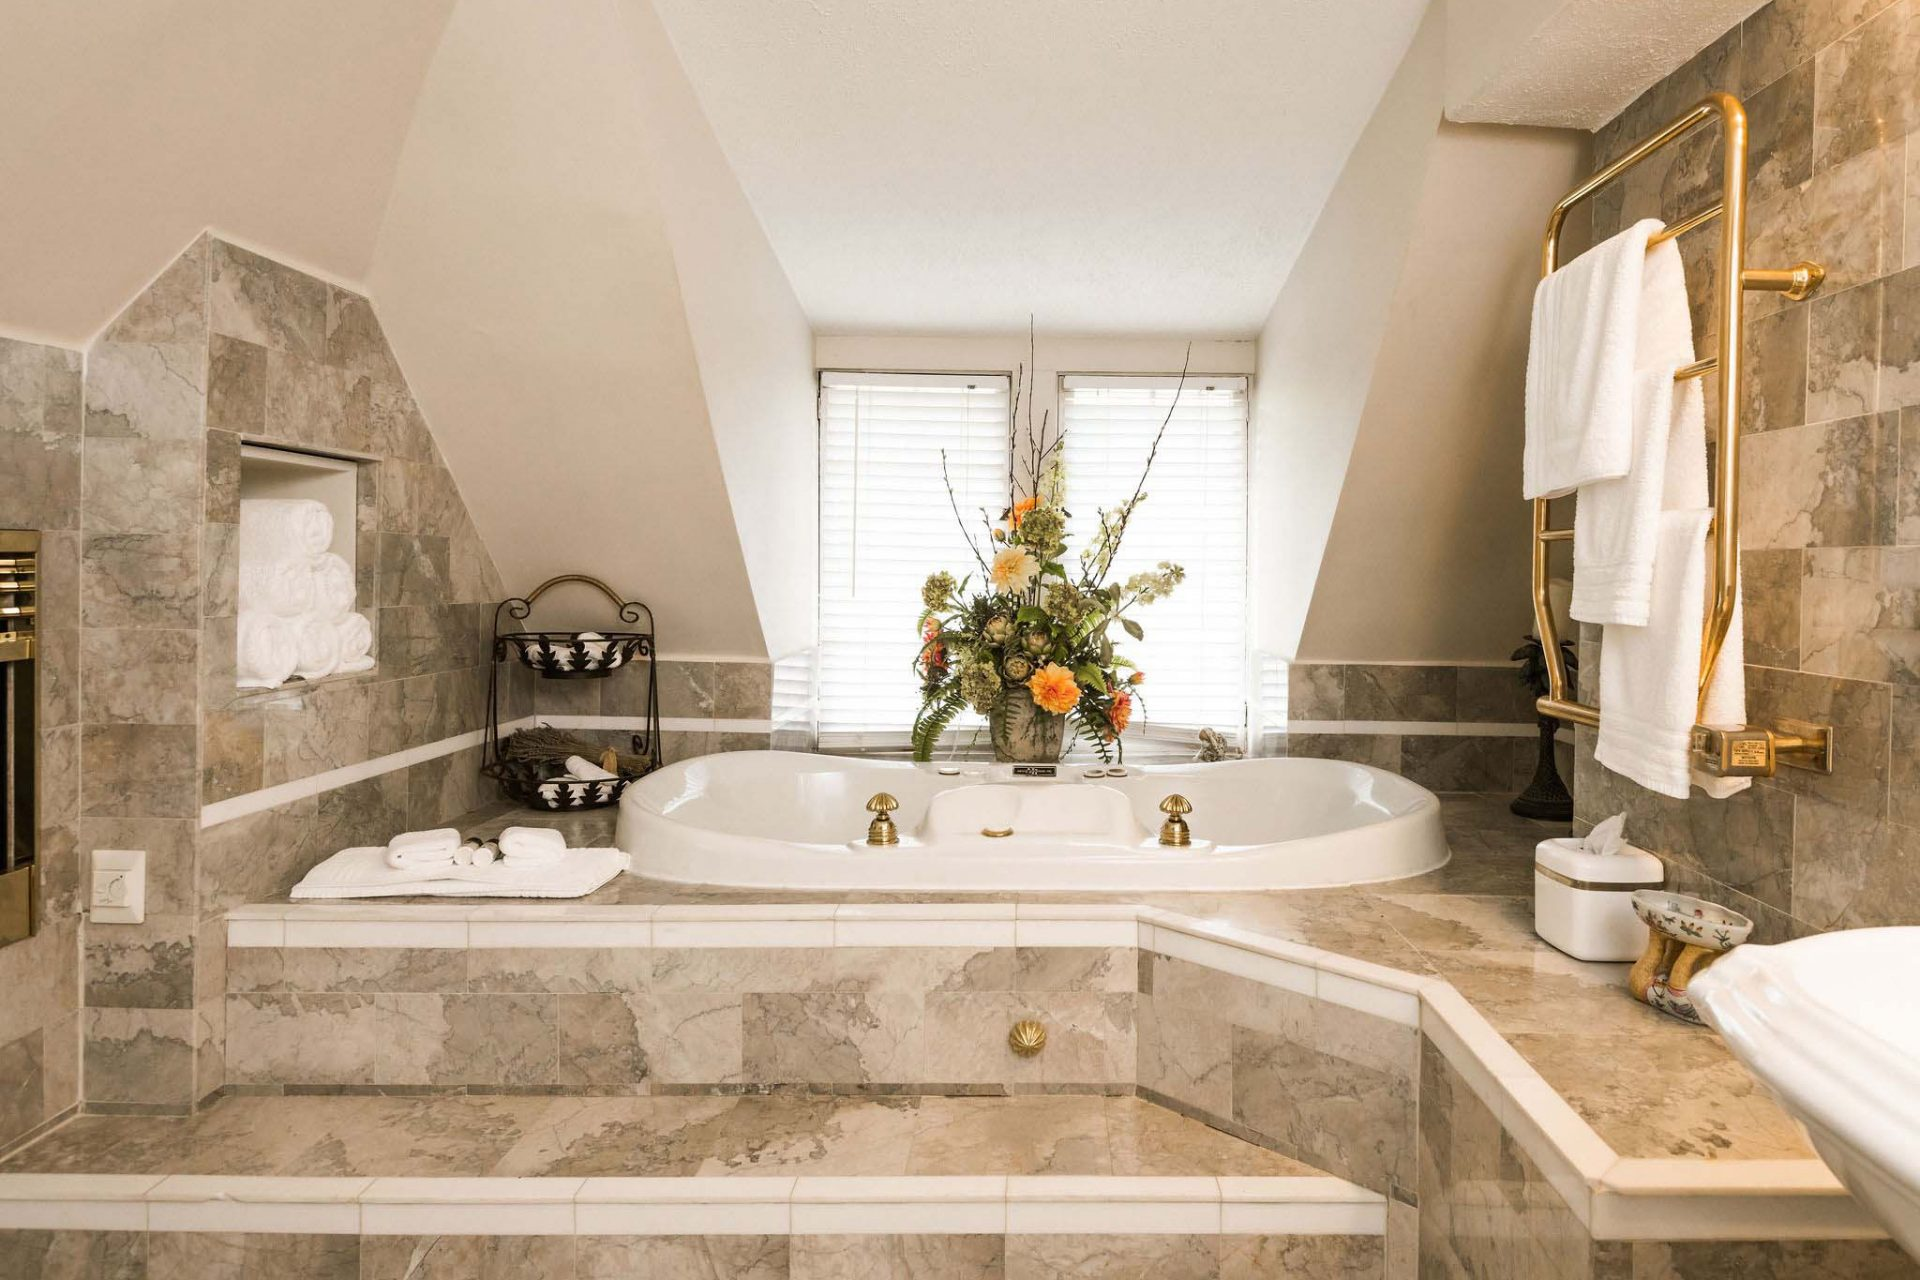 A luxurious white marble bathroom with heated floors and an elevated two-person Whirlpool bathtub, part of a 5-room suite in an Asheville bnb.